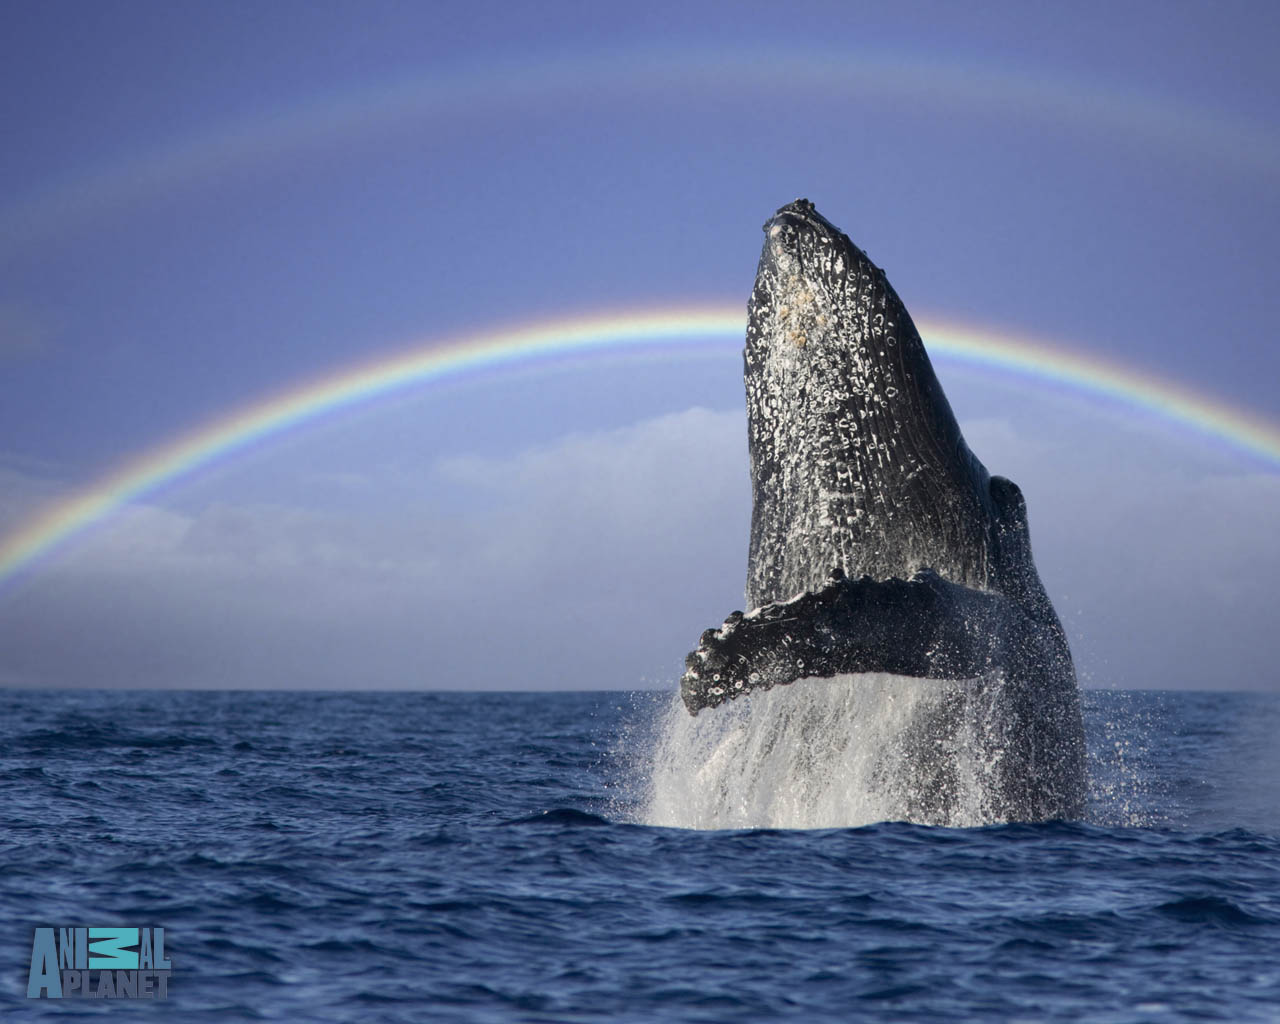 Animal Planet Whales Wallpaper Download   humpback whale rainbow 1280x1024